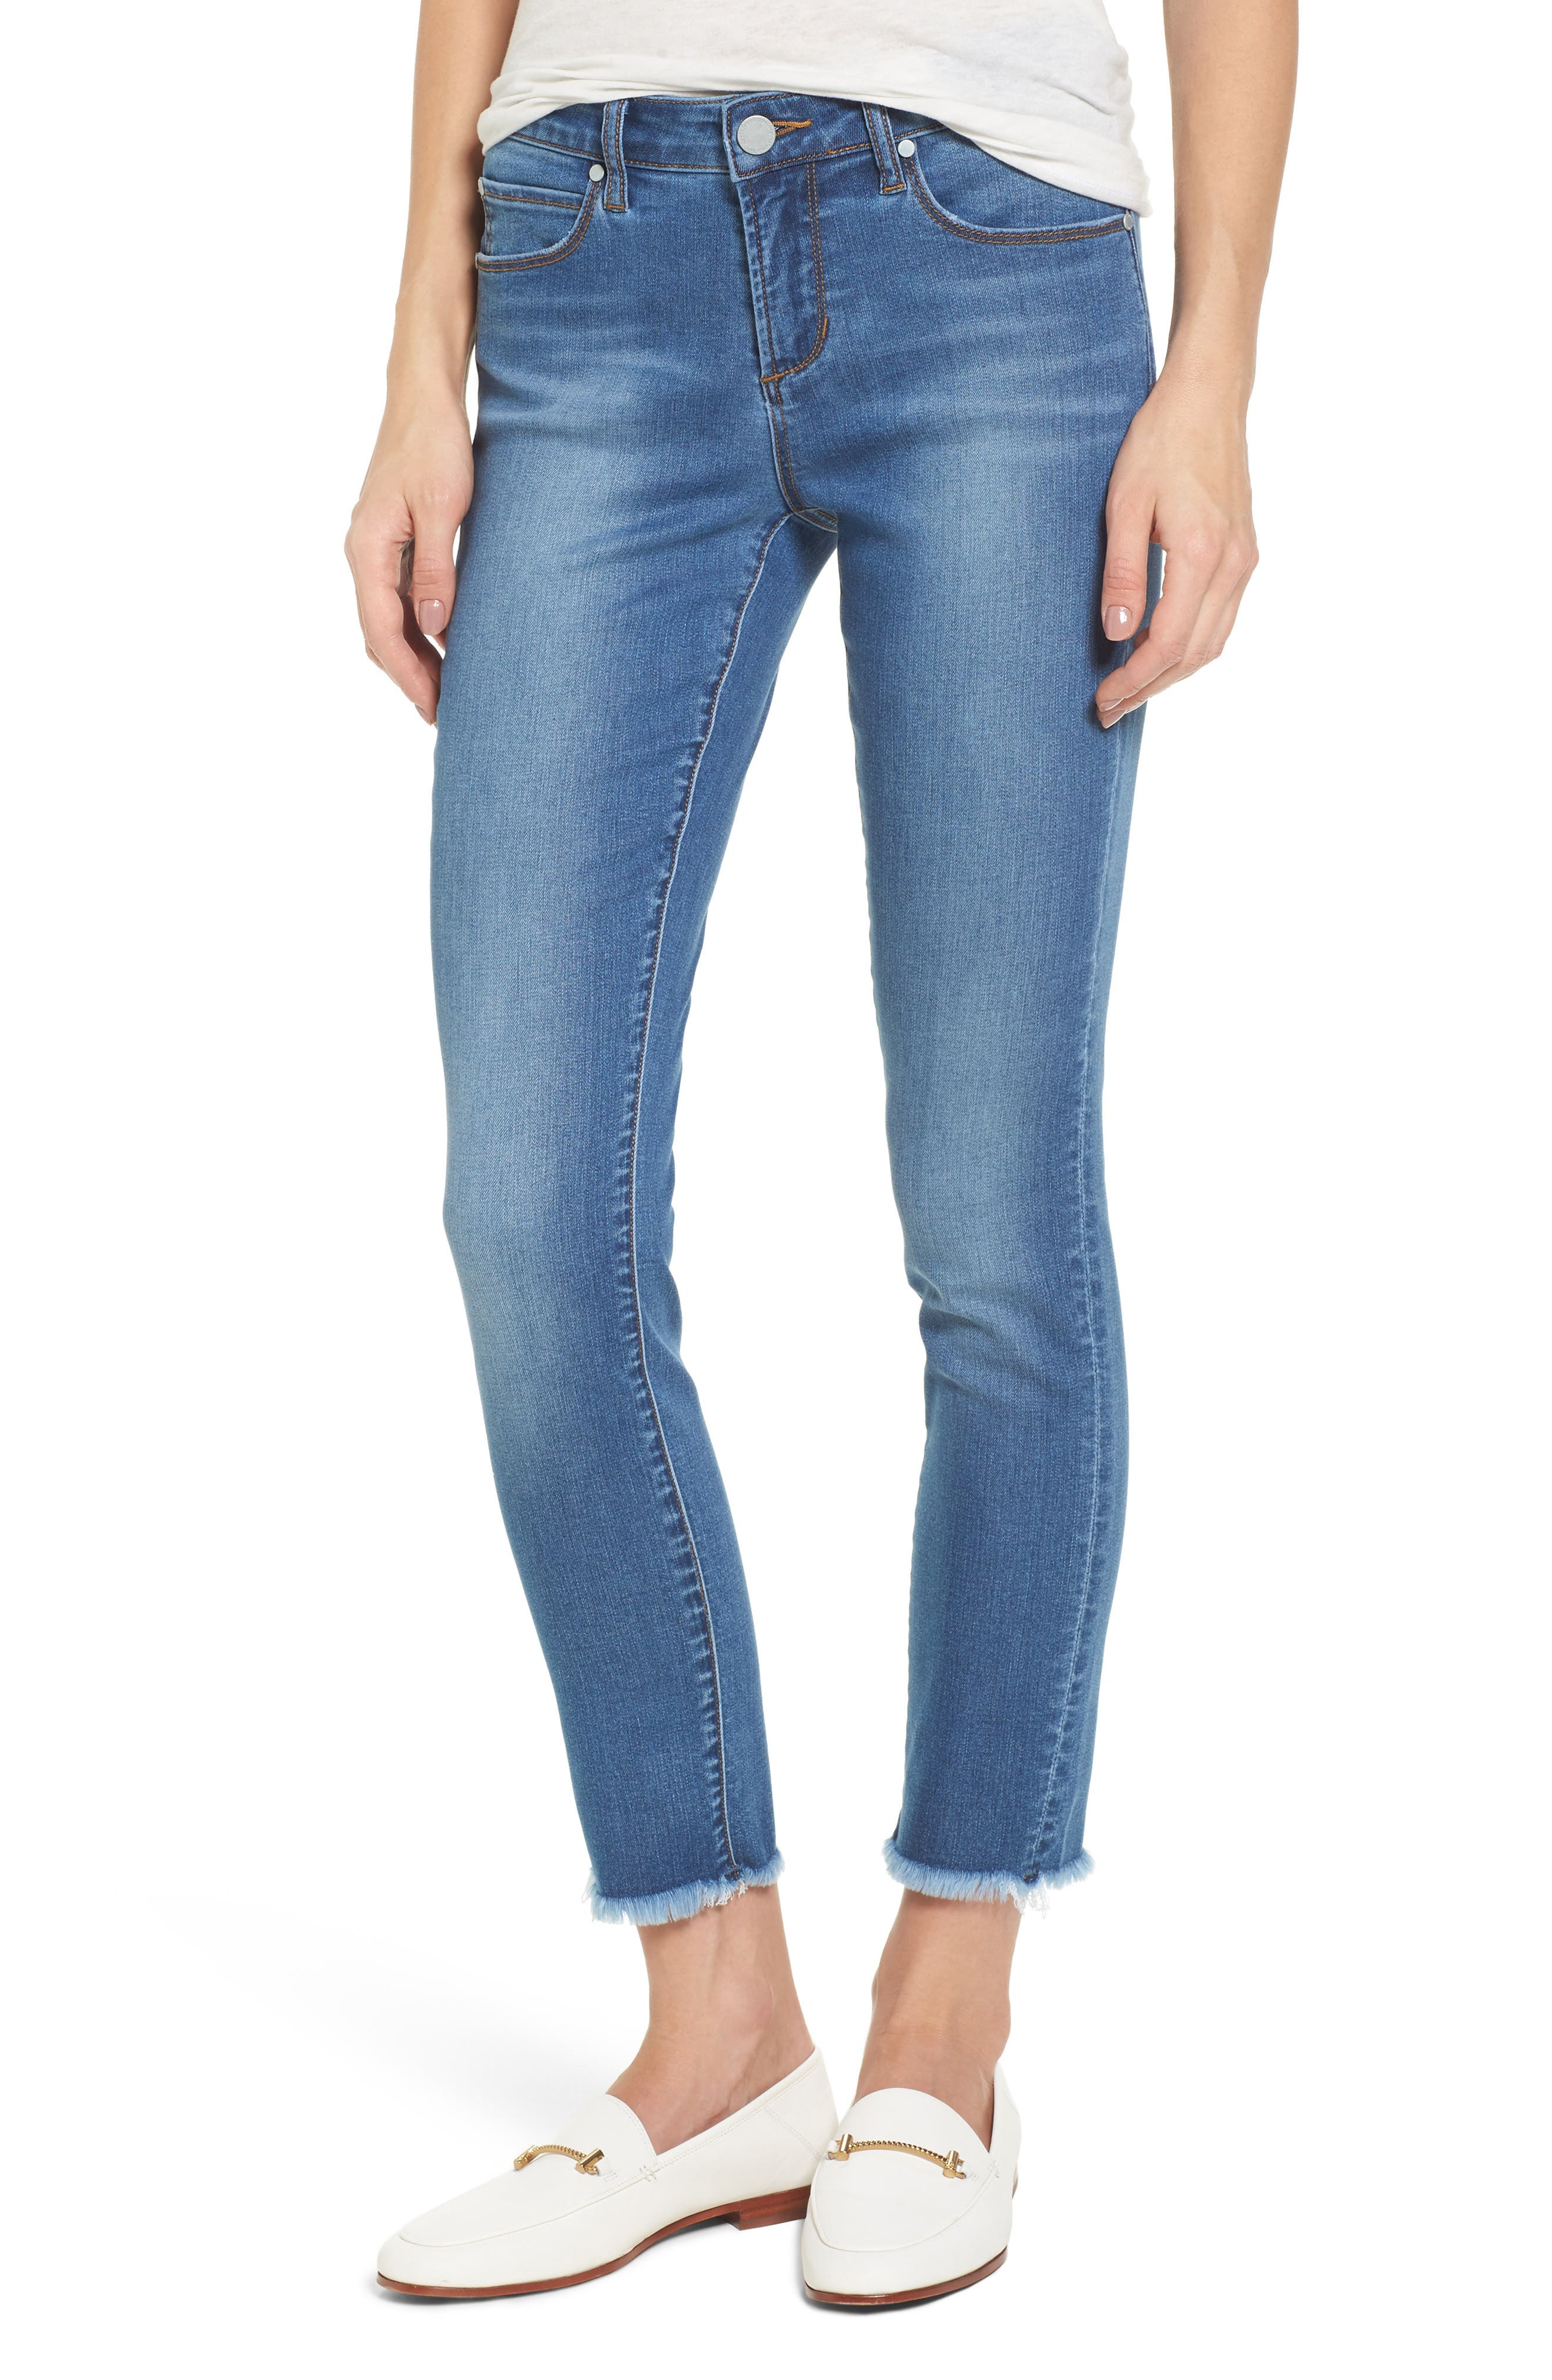 Carly Ankle Skinny Jeans,                         Main,                         color, Sparta